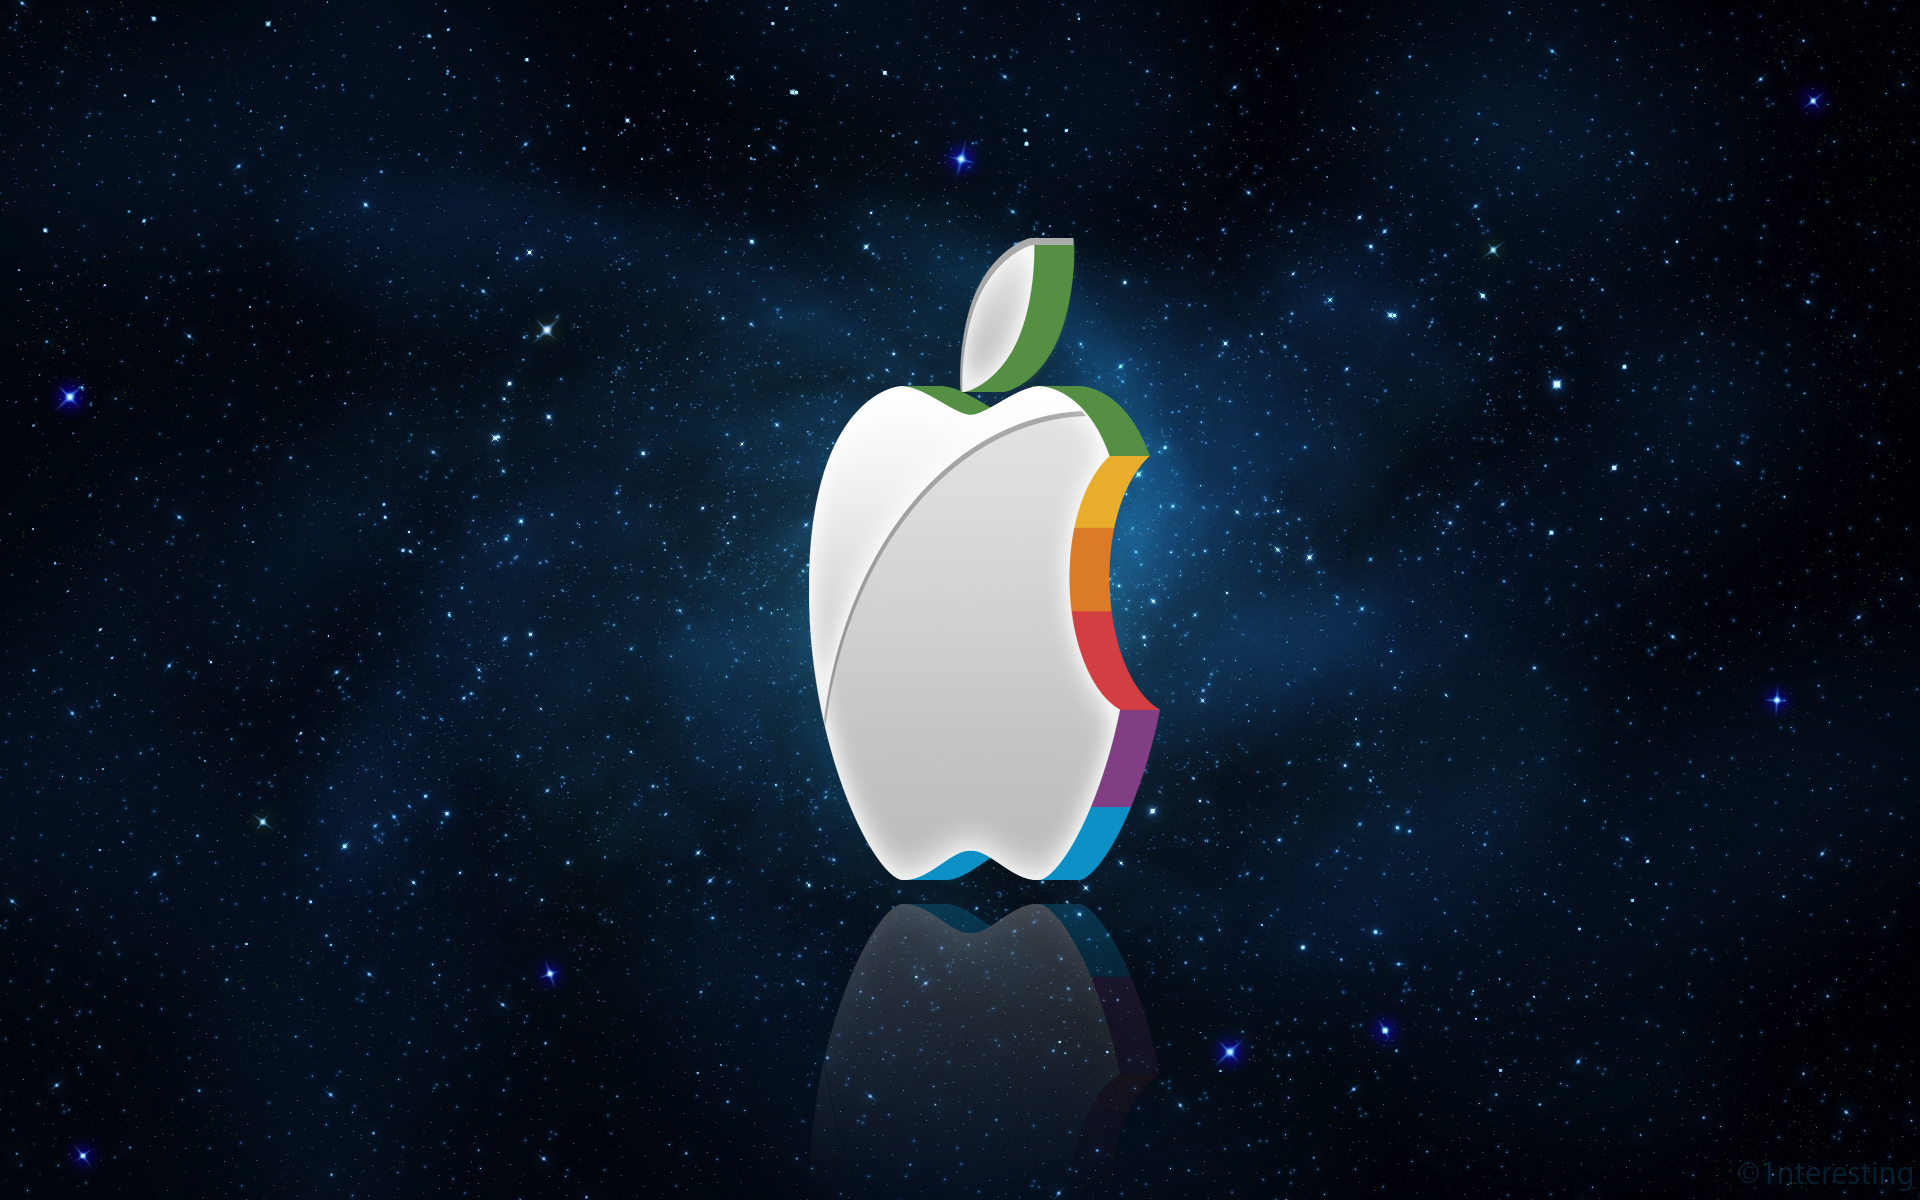 apple full hd wallpaper and background image | 1920x1200 | id:524730